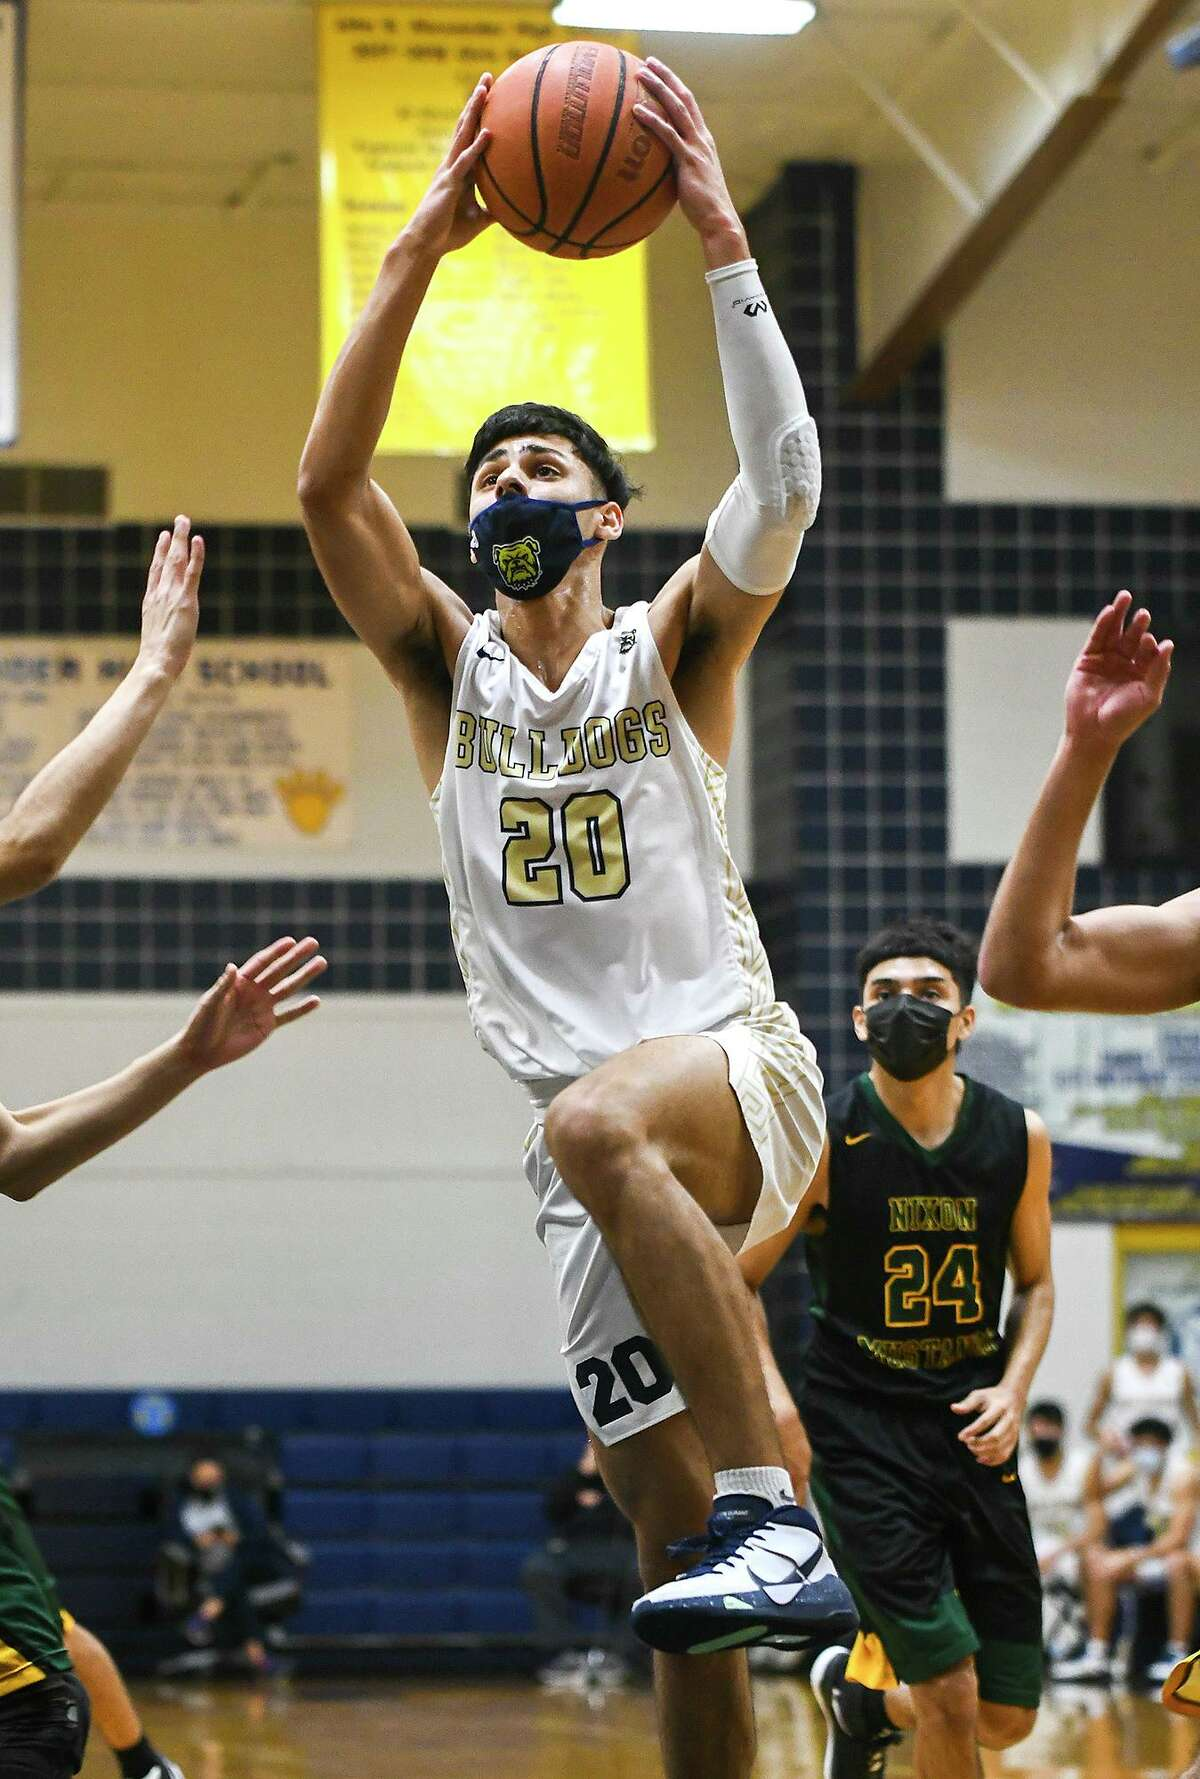 Jacob Rodriguez and Alexander won 77-67 at home Tuesday over Nixon in their final game of the regular season to secure at least a share of the District 30-6A title.